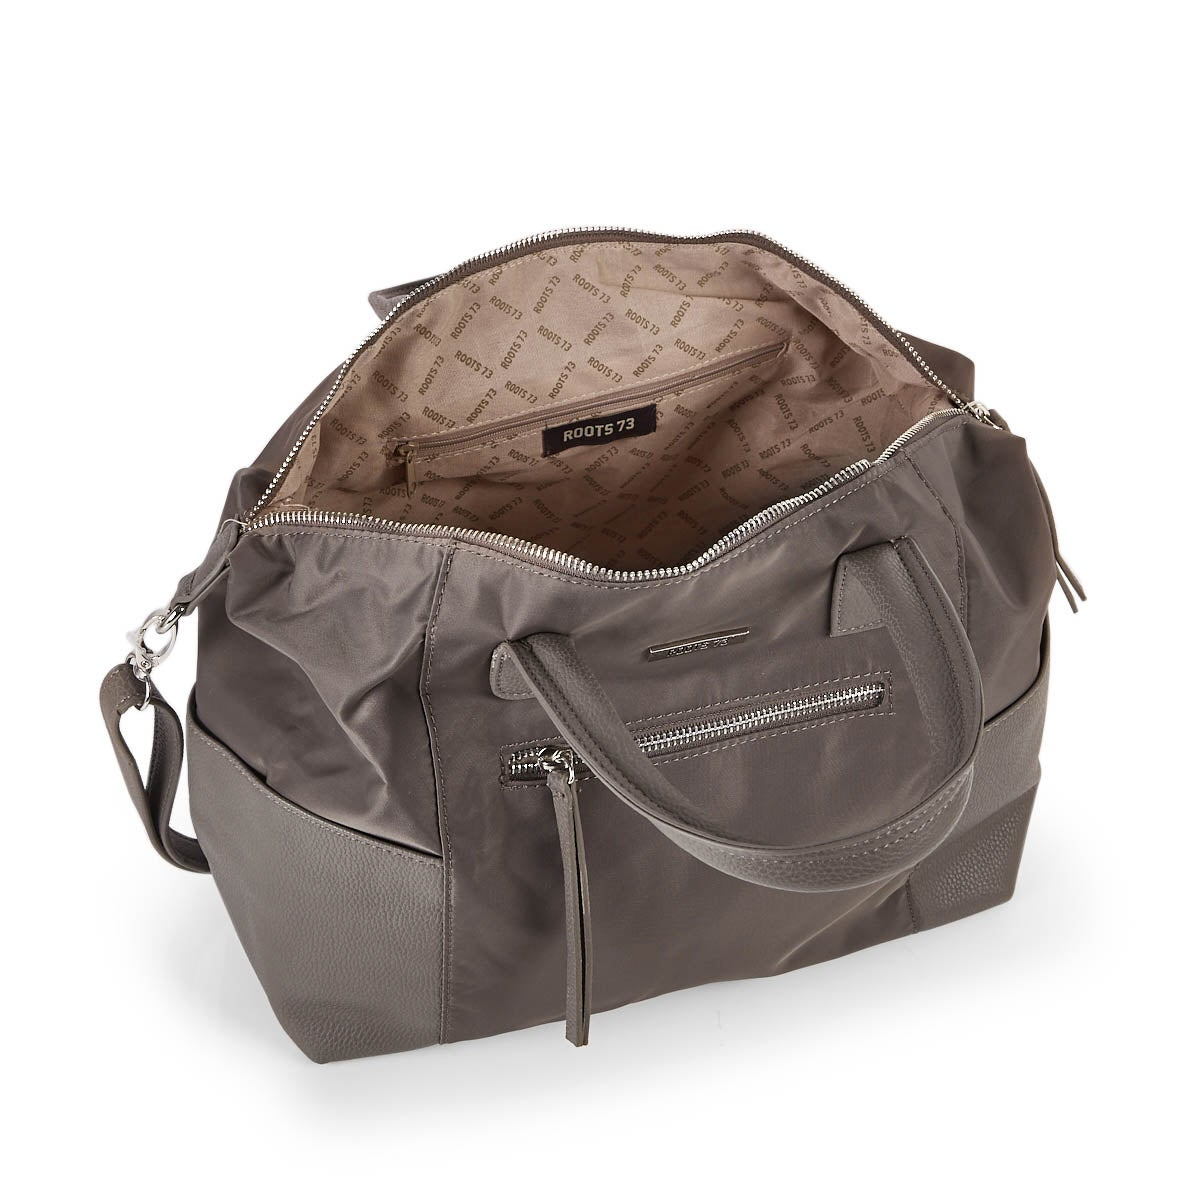 Lds Roots73 taupe top handle satchel